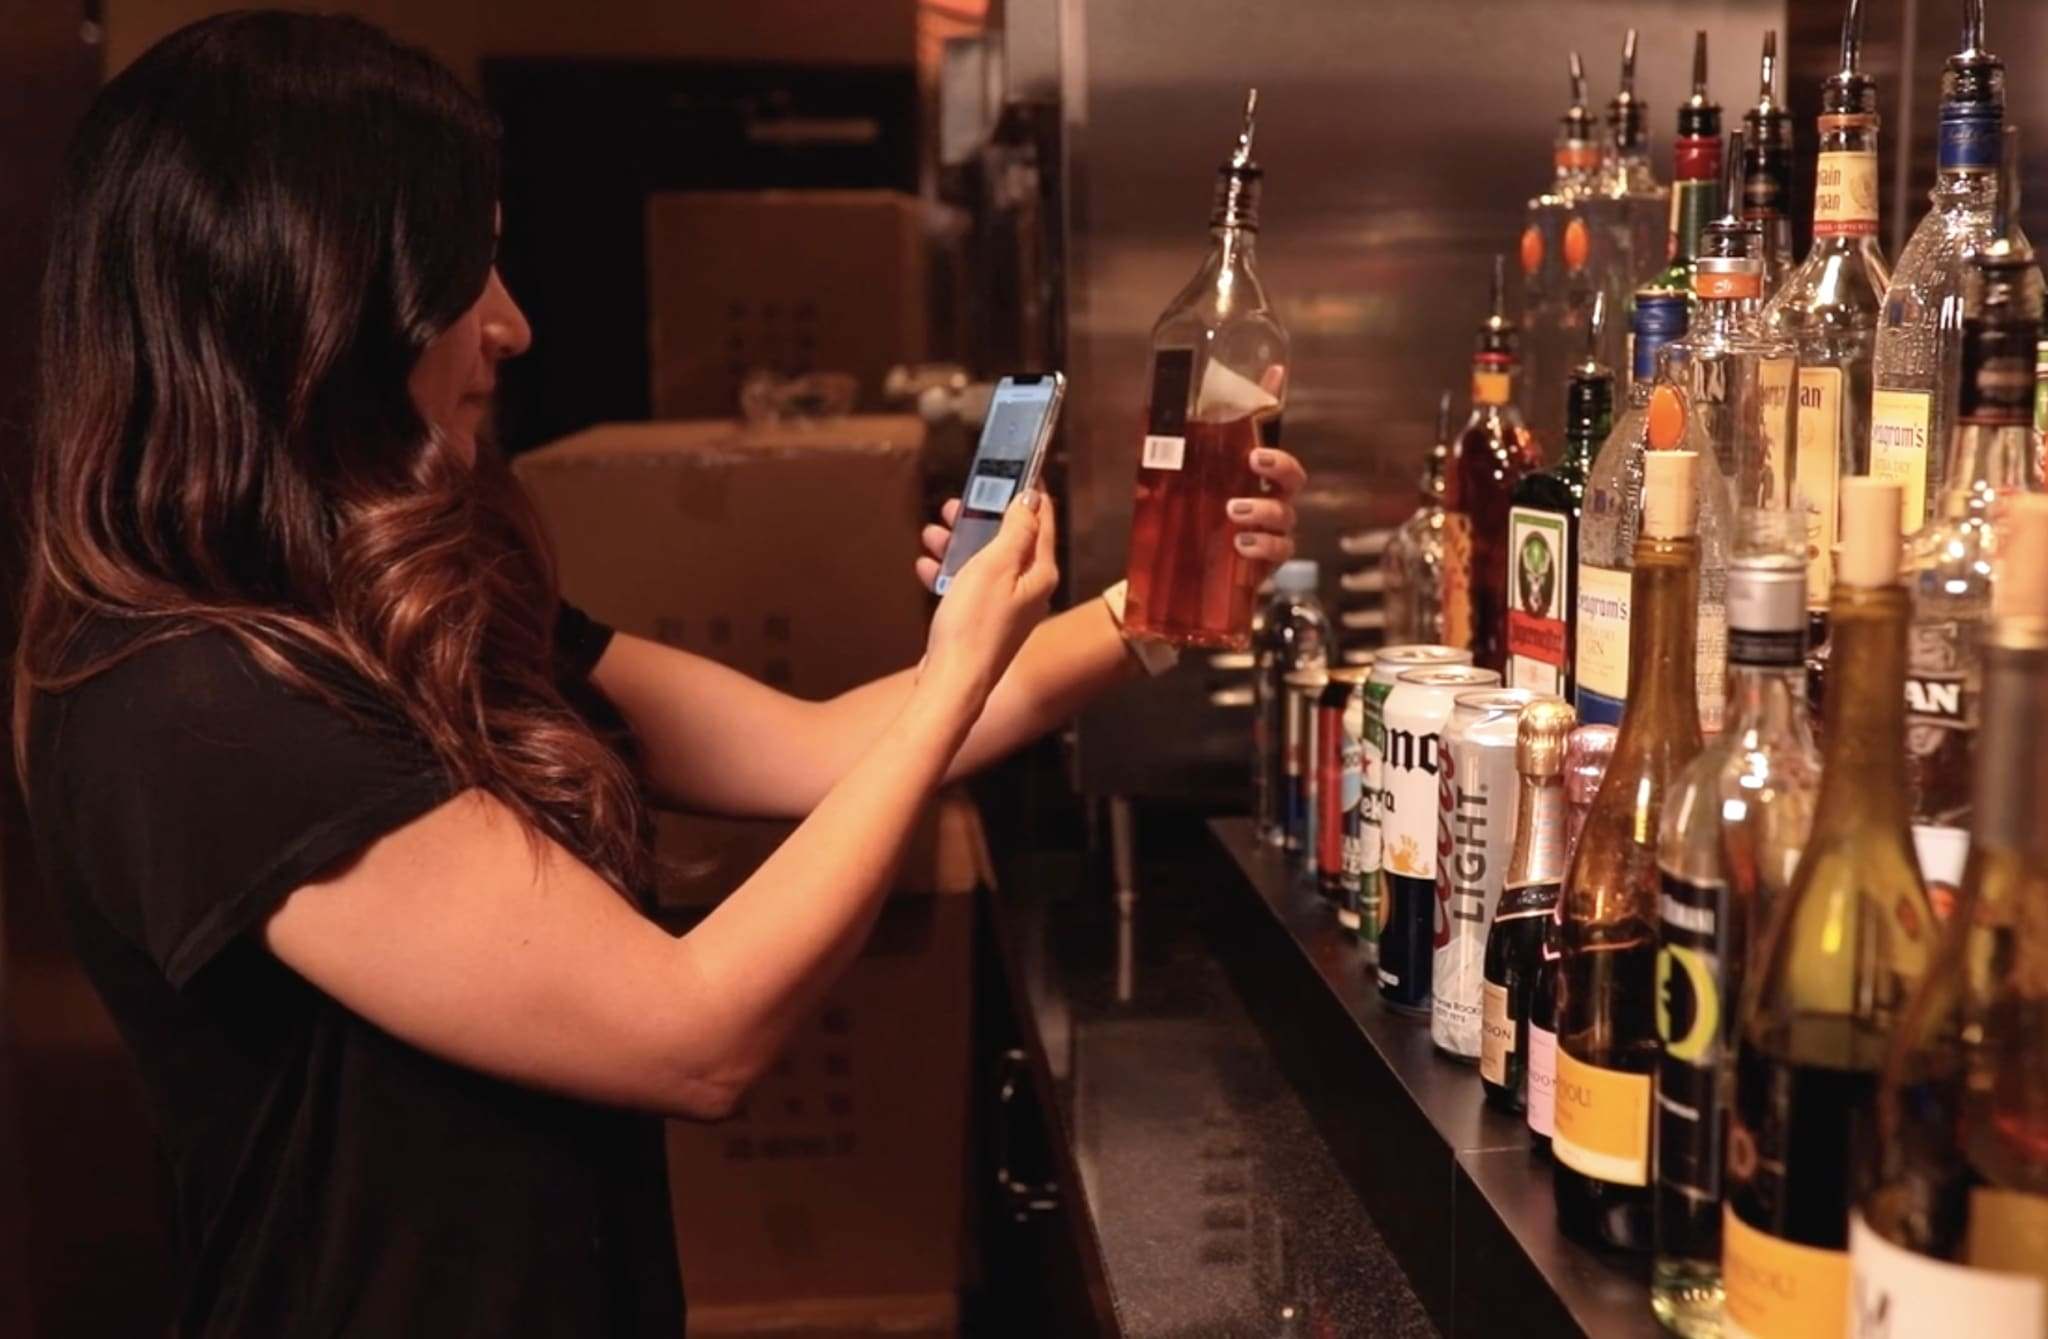 woman, alcohol, iphone, barcode scanner, bar and restaurant management software